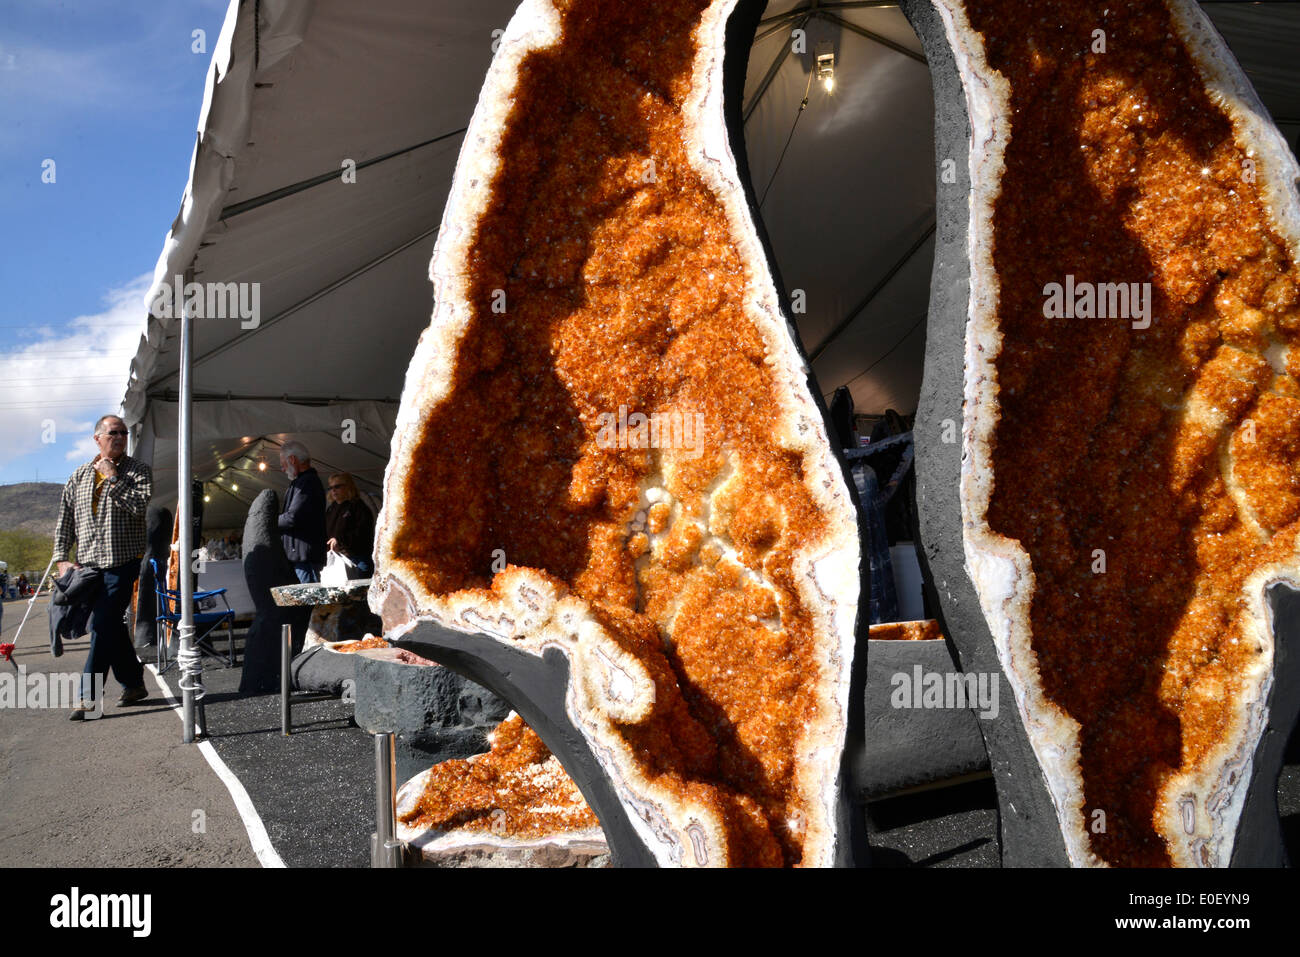 The annual Tucson Gem and Mineral Show draws vendors and buyers from around the world in Tucson, Arizona, USA. Stock Photo